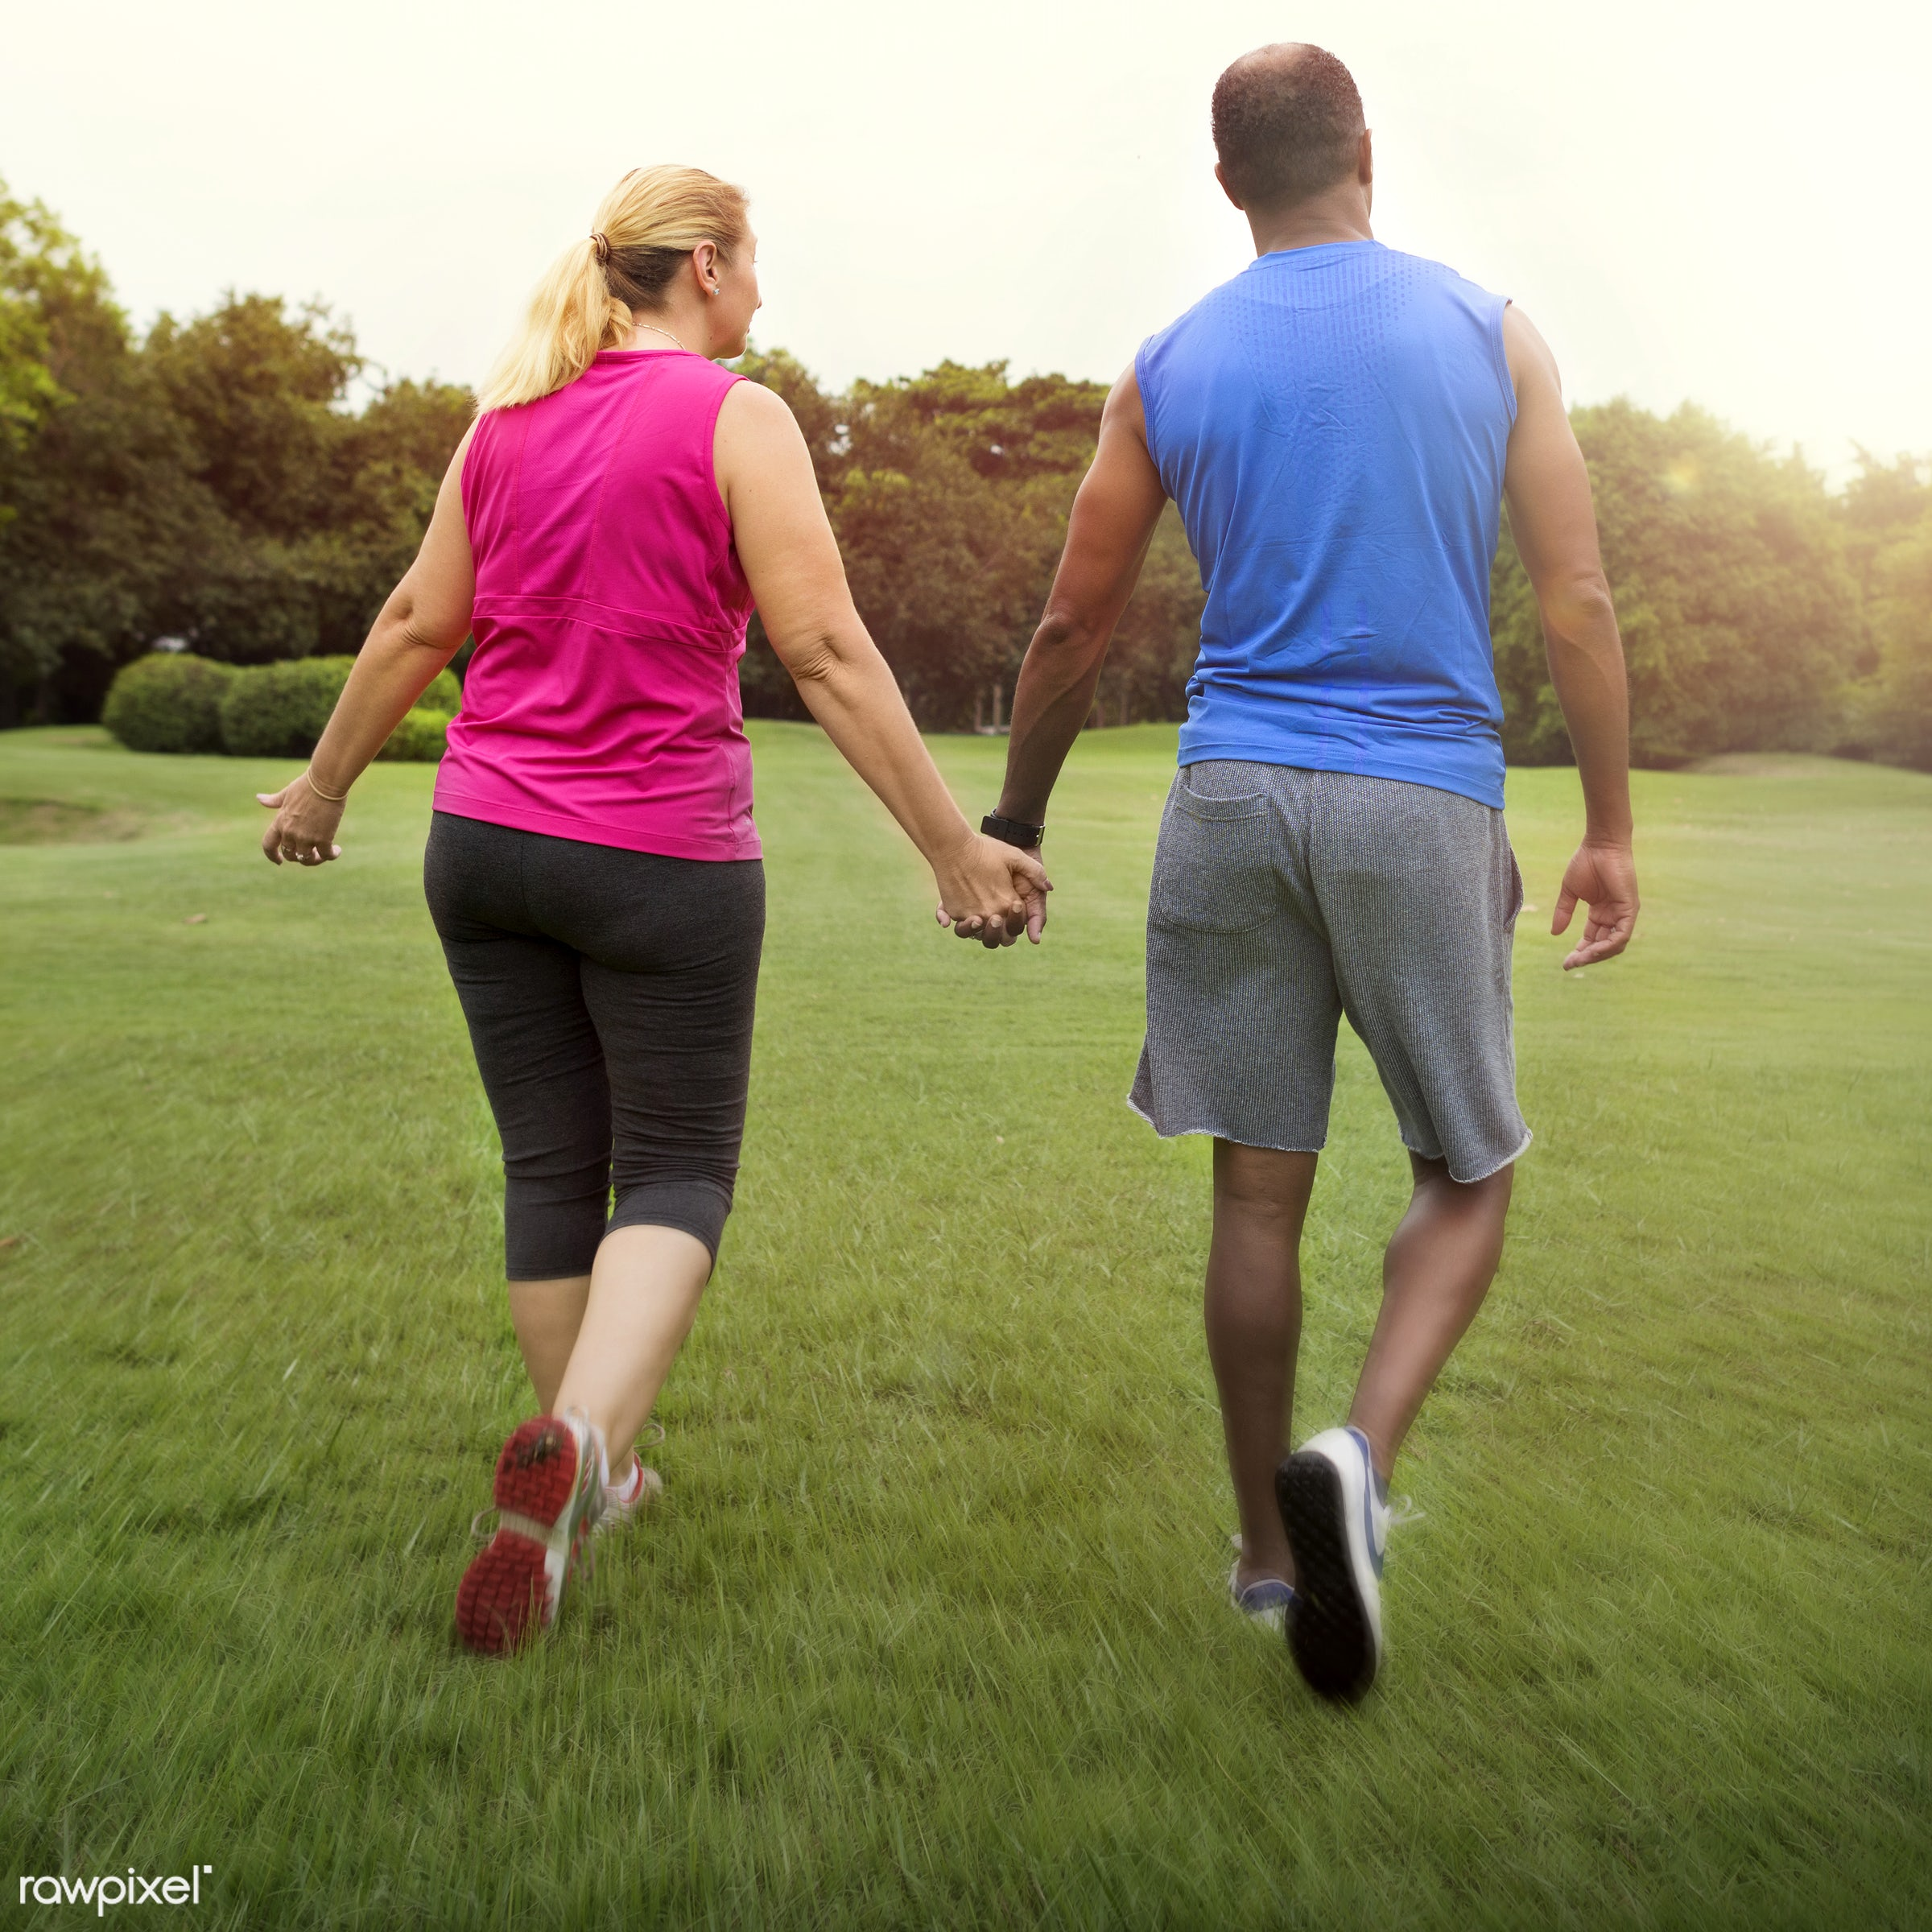 african, african descent, caucasian, cheerful, clothing, couple, exercise, exercising, form, garden, green, hands, happiness...